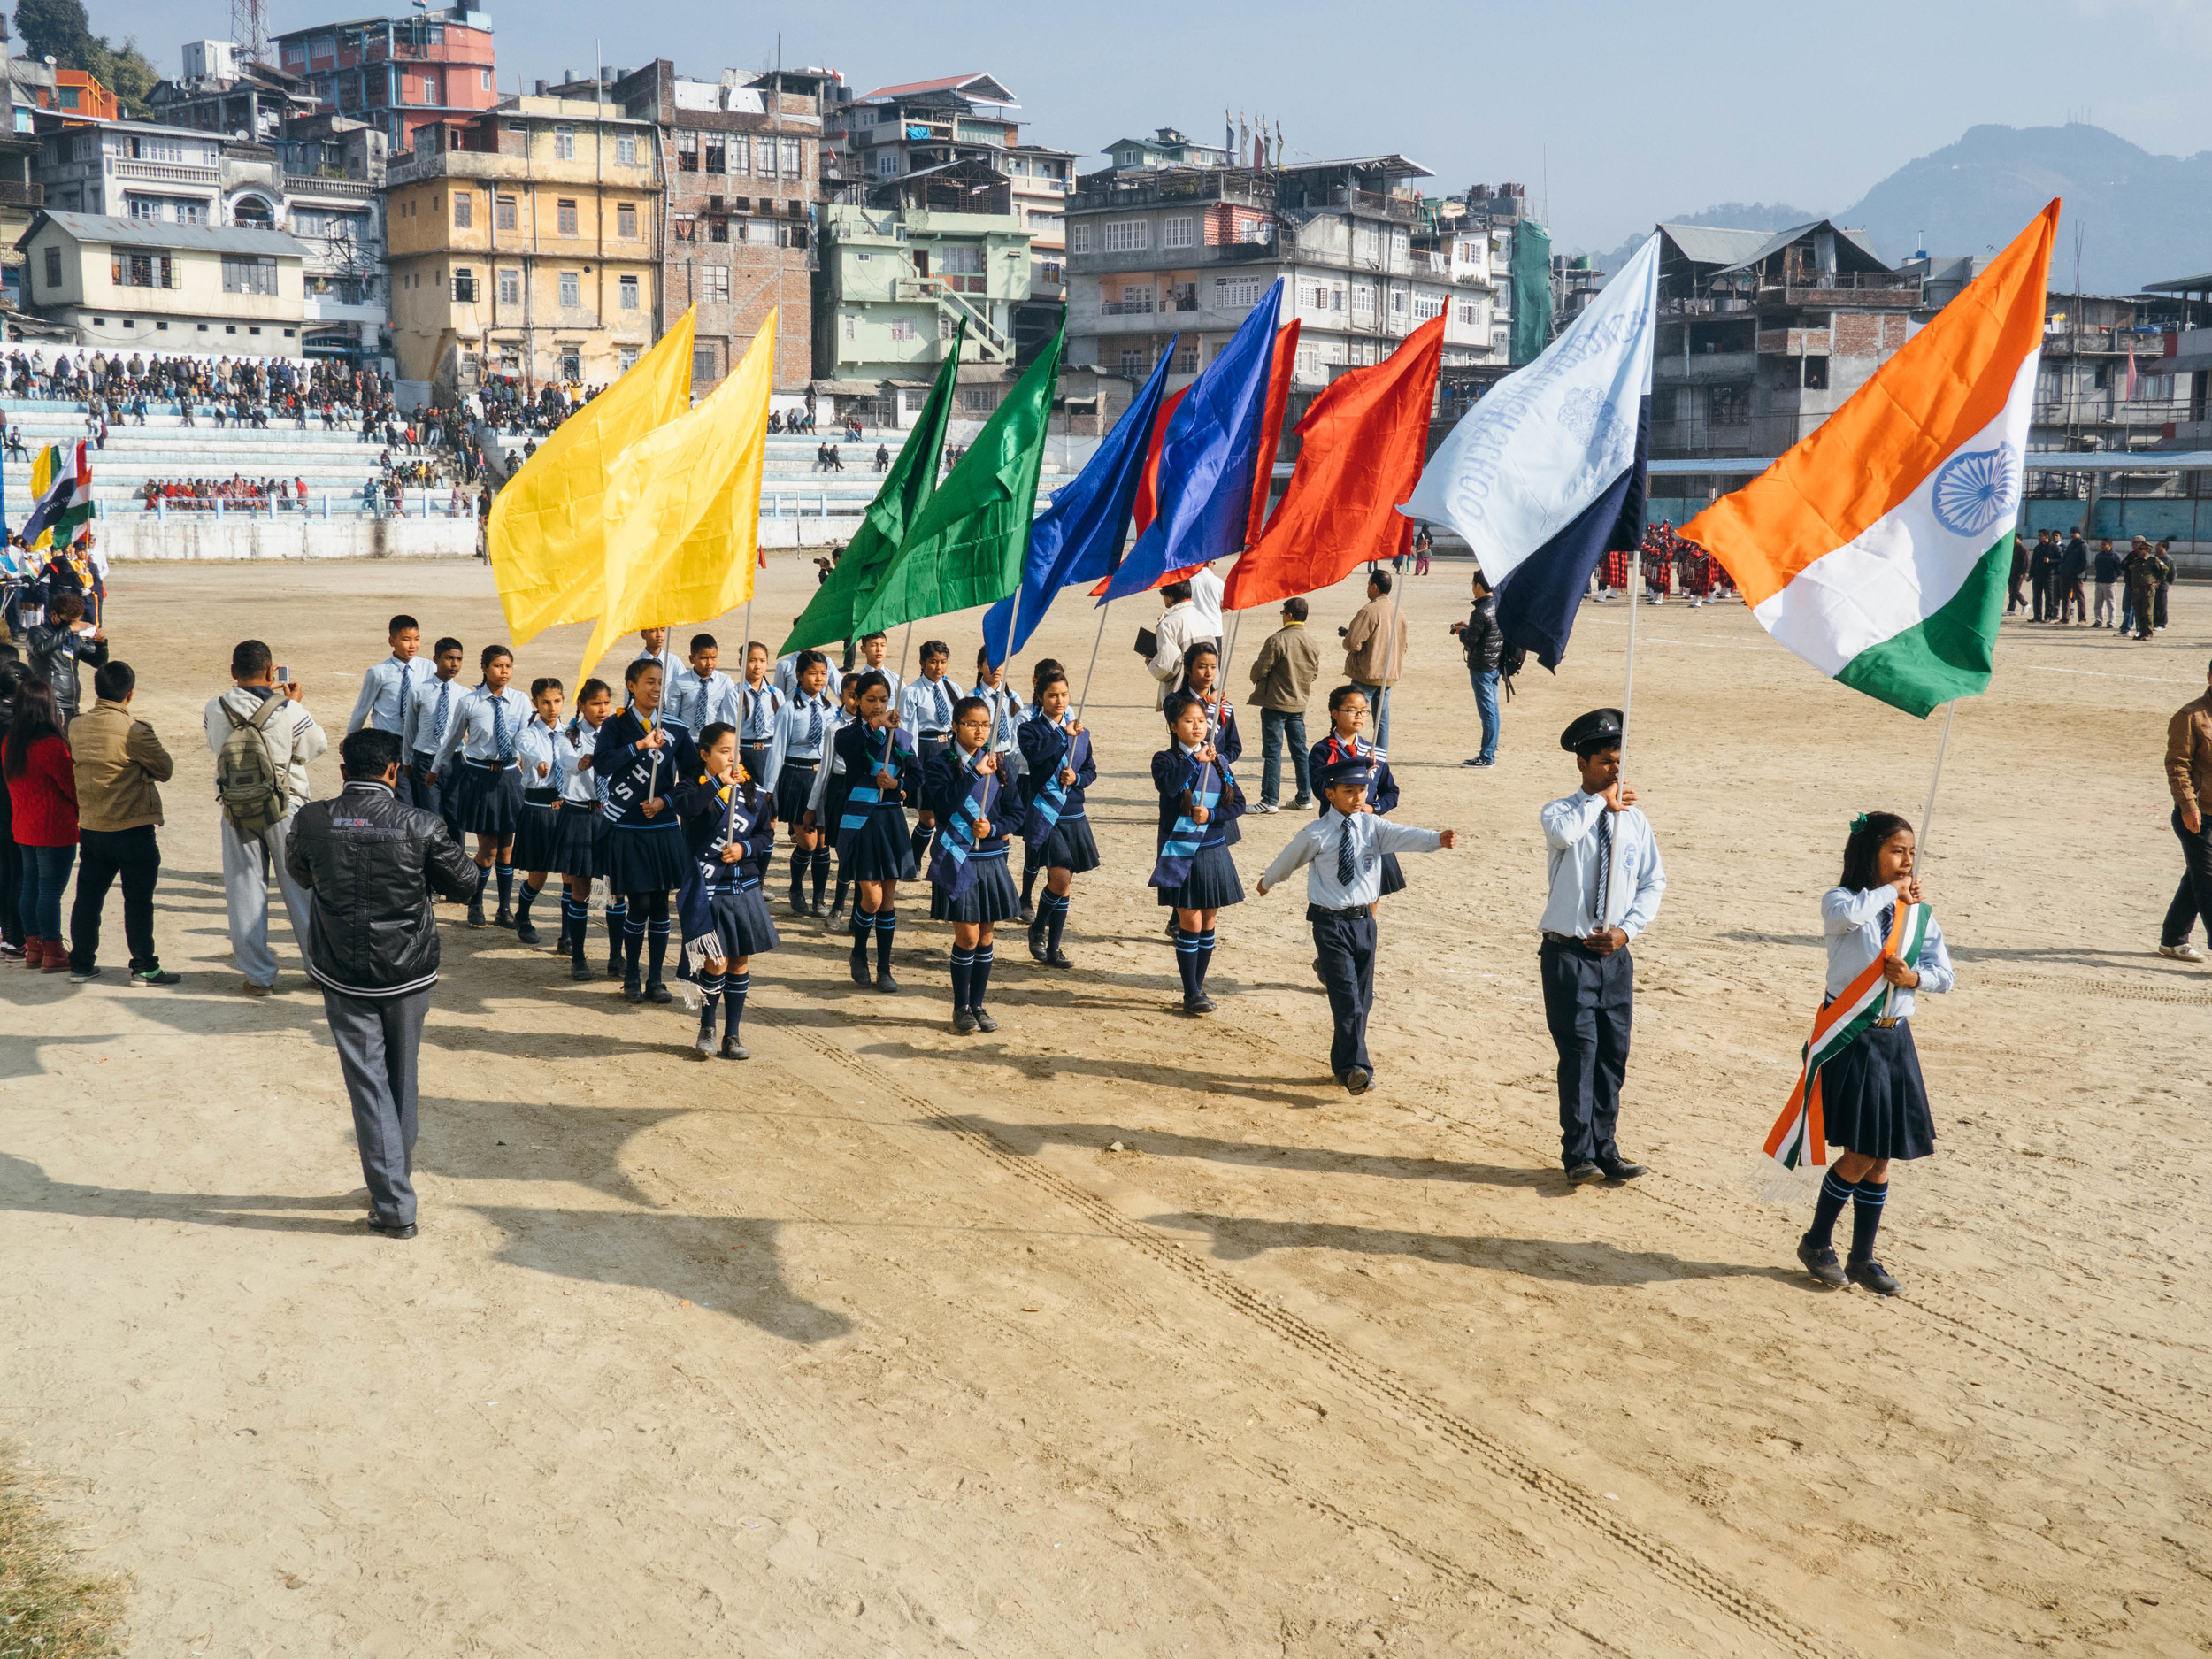 School children join in a parade to celebrate India's Republic Day.